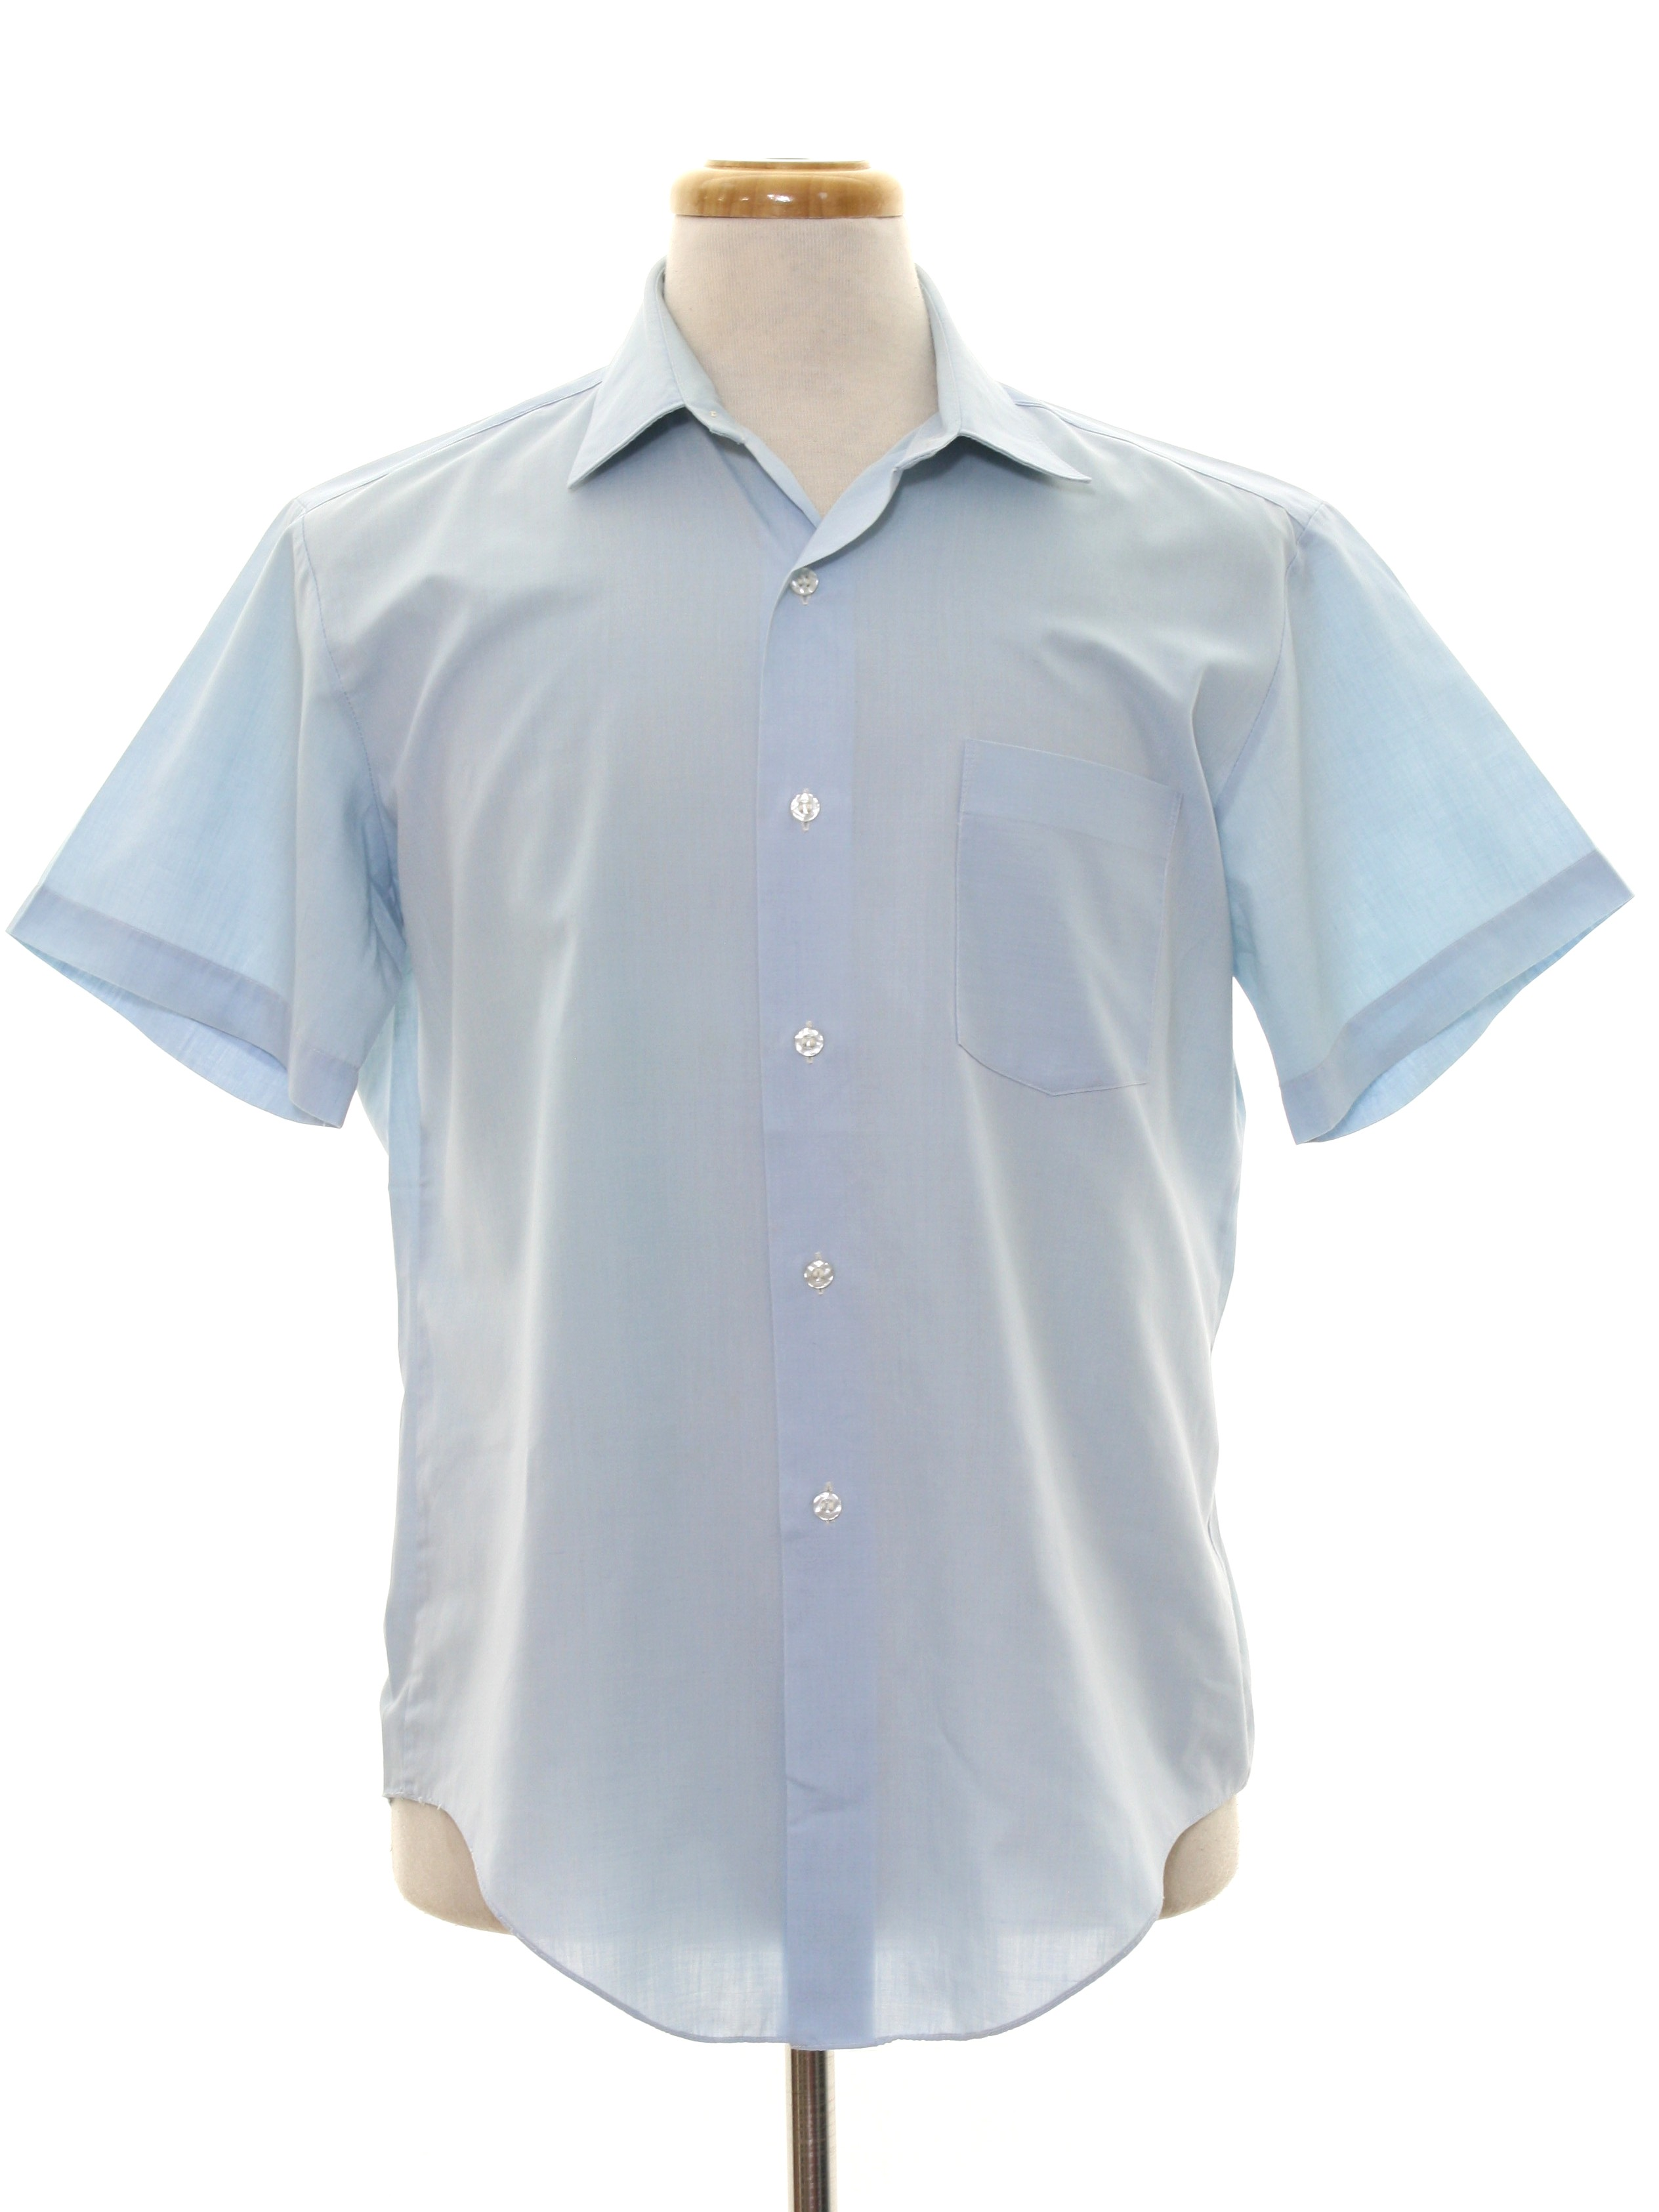 50s Vintage Aristocrat Shirt: Late 50s or Early 60s -Aristocrat ...